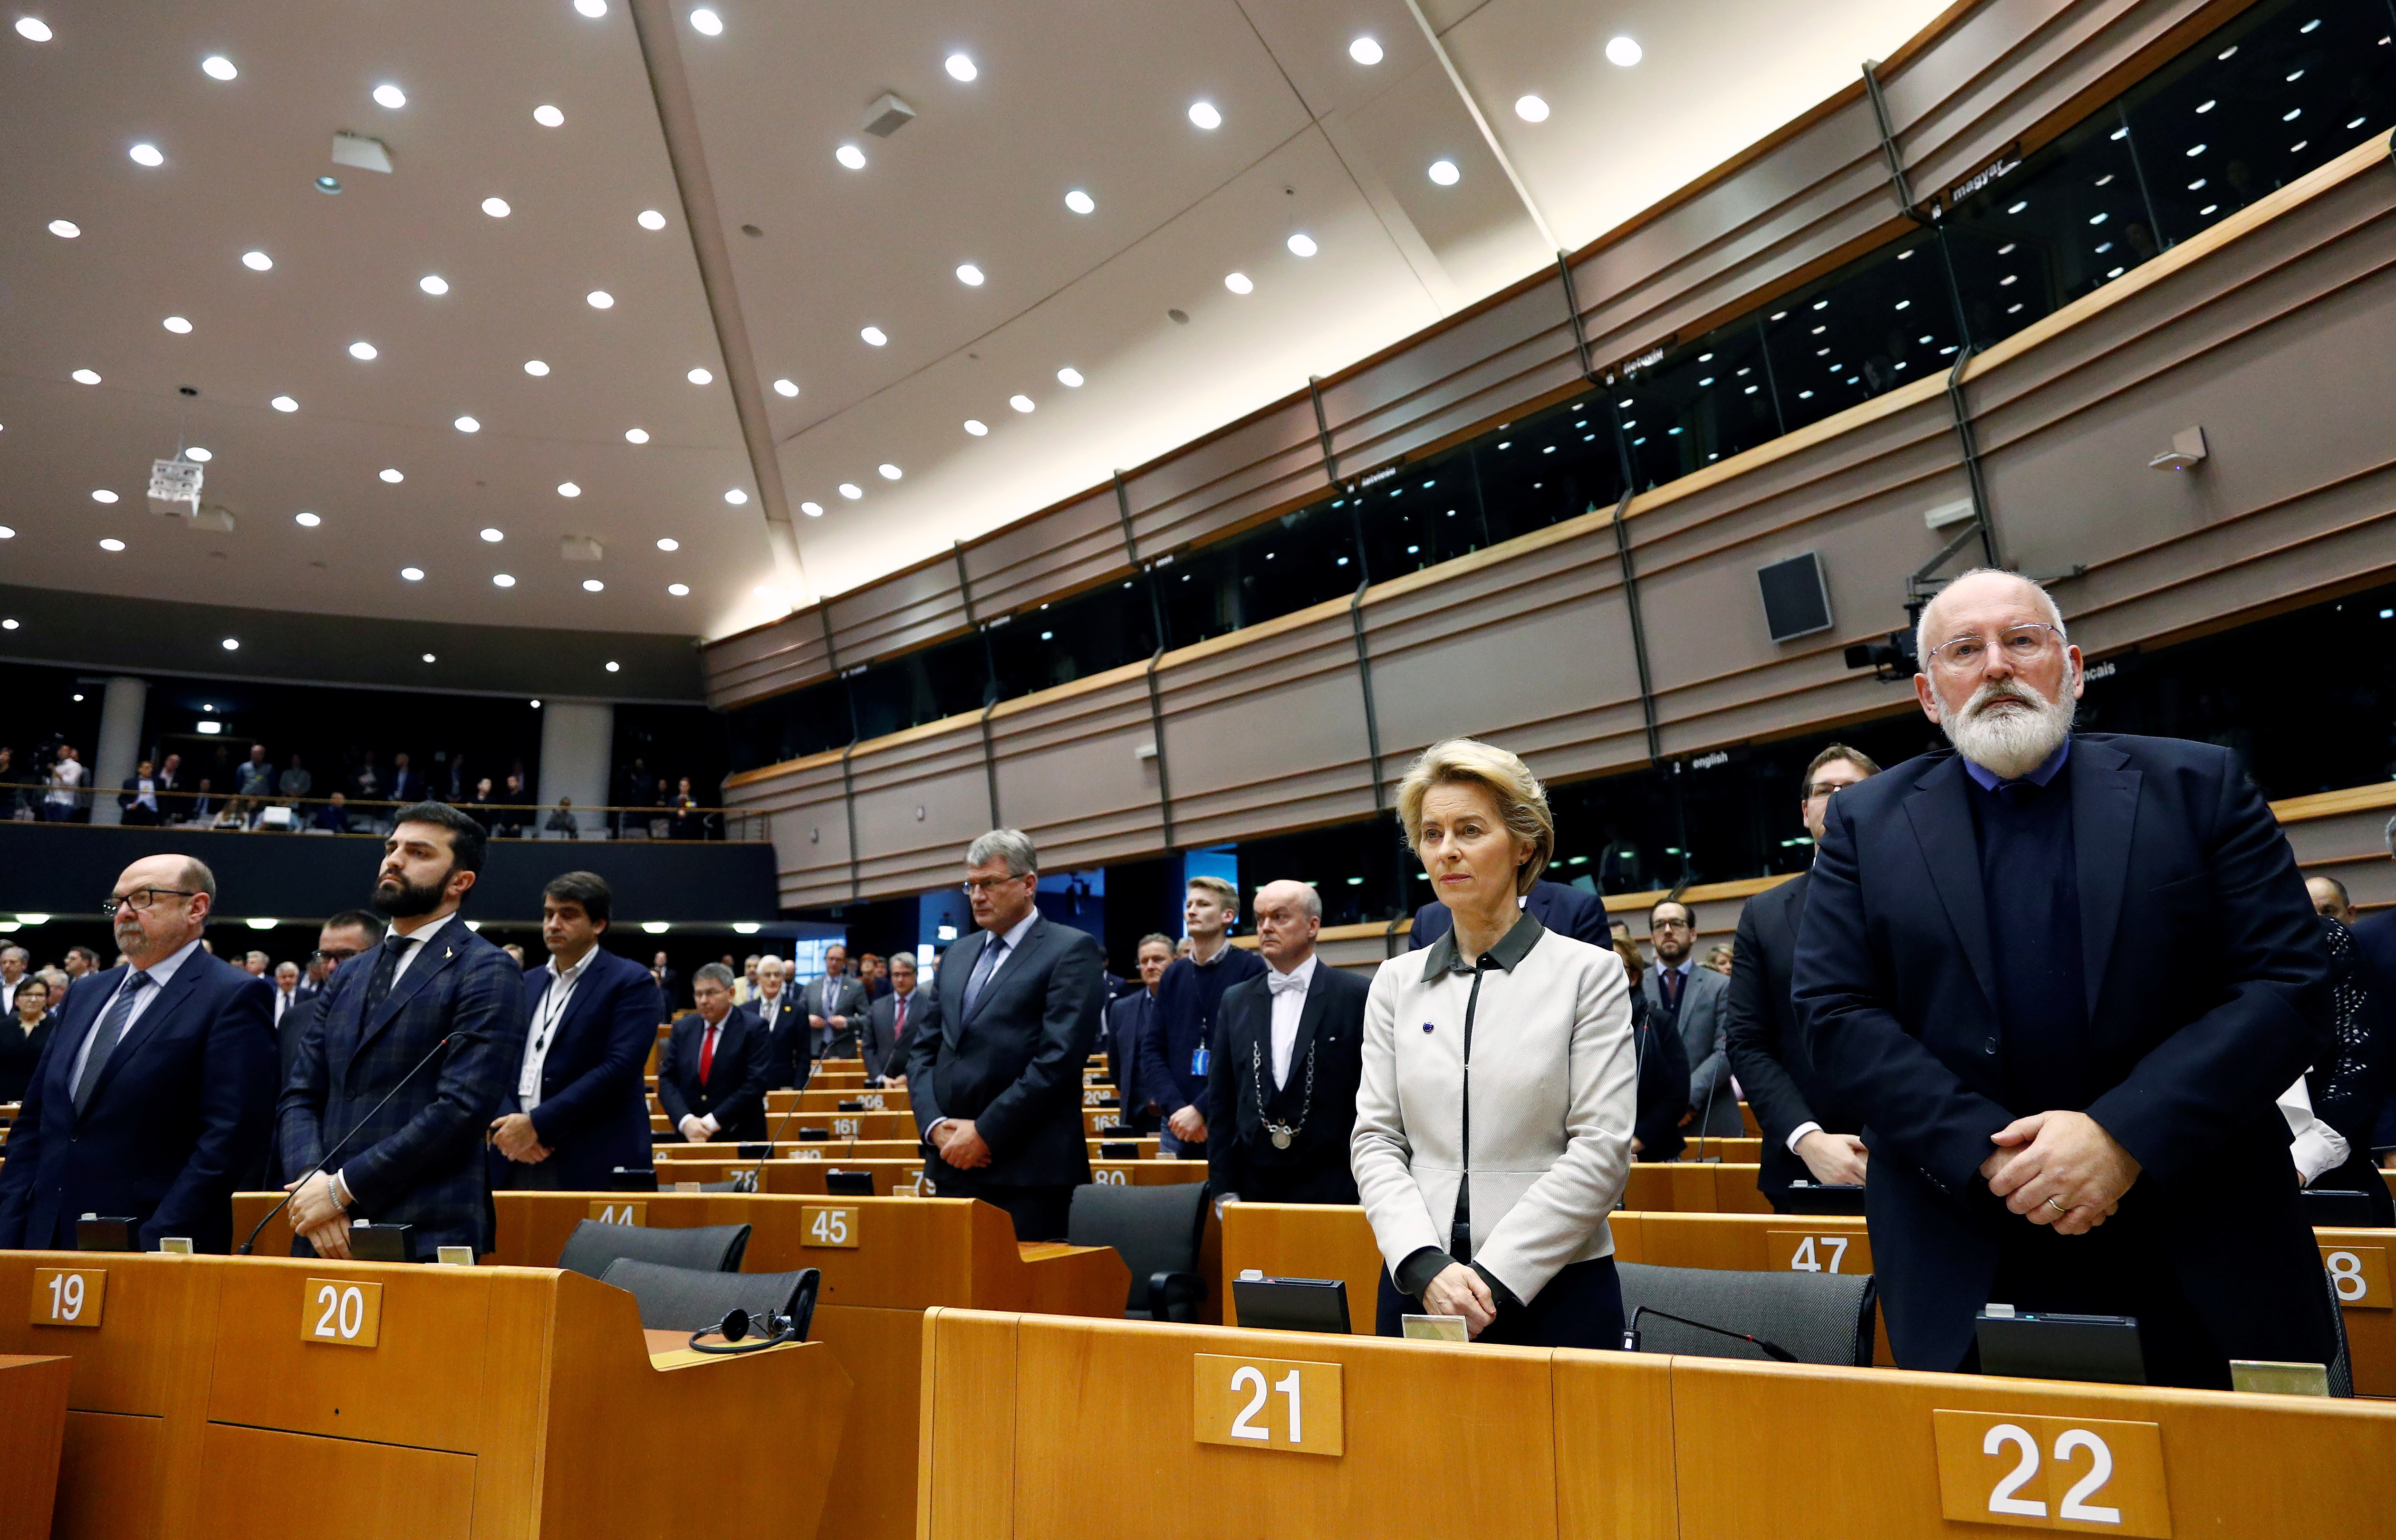 European Commission President Ursula von der Leyen and Vice-President Frans Timmermans observe a minute of silence for the victims of the 2018 Strasbourg attack, at the beginning of an extraordinary session to present a Green Deal plan, at the European Parliament in Brussels, Belgium December 11, 2019. REUTERS/Francois Lenoir - RC21TD97QM8Z